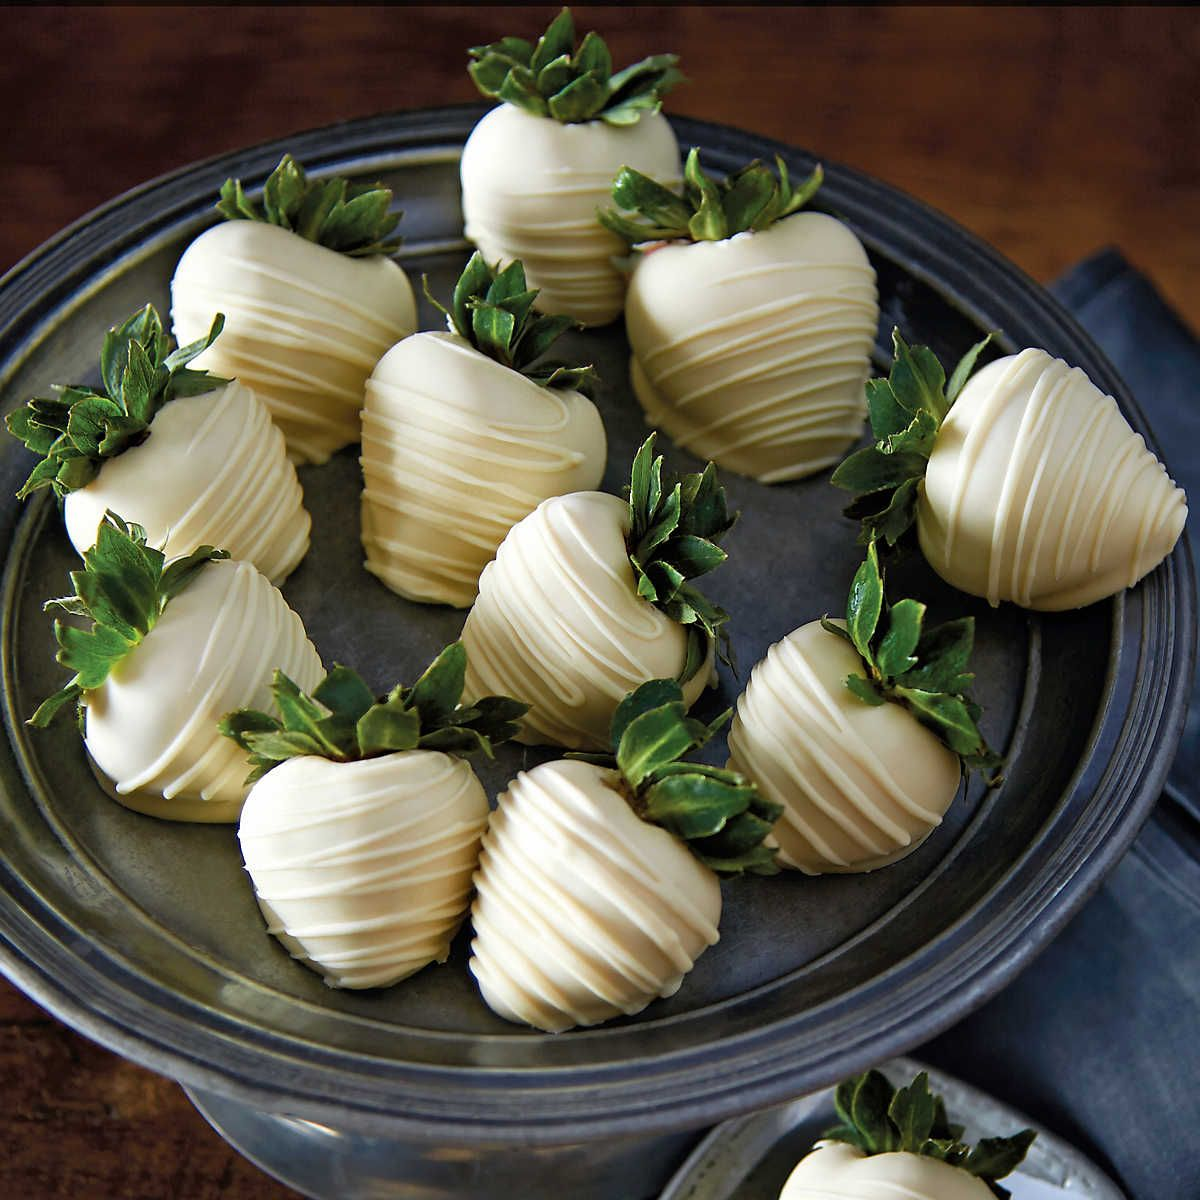 White Chocolate-Covered Strawberries Delivery - One Dozen   Food ...